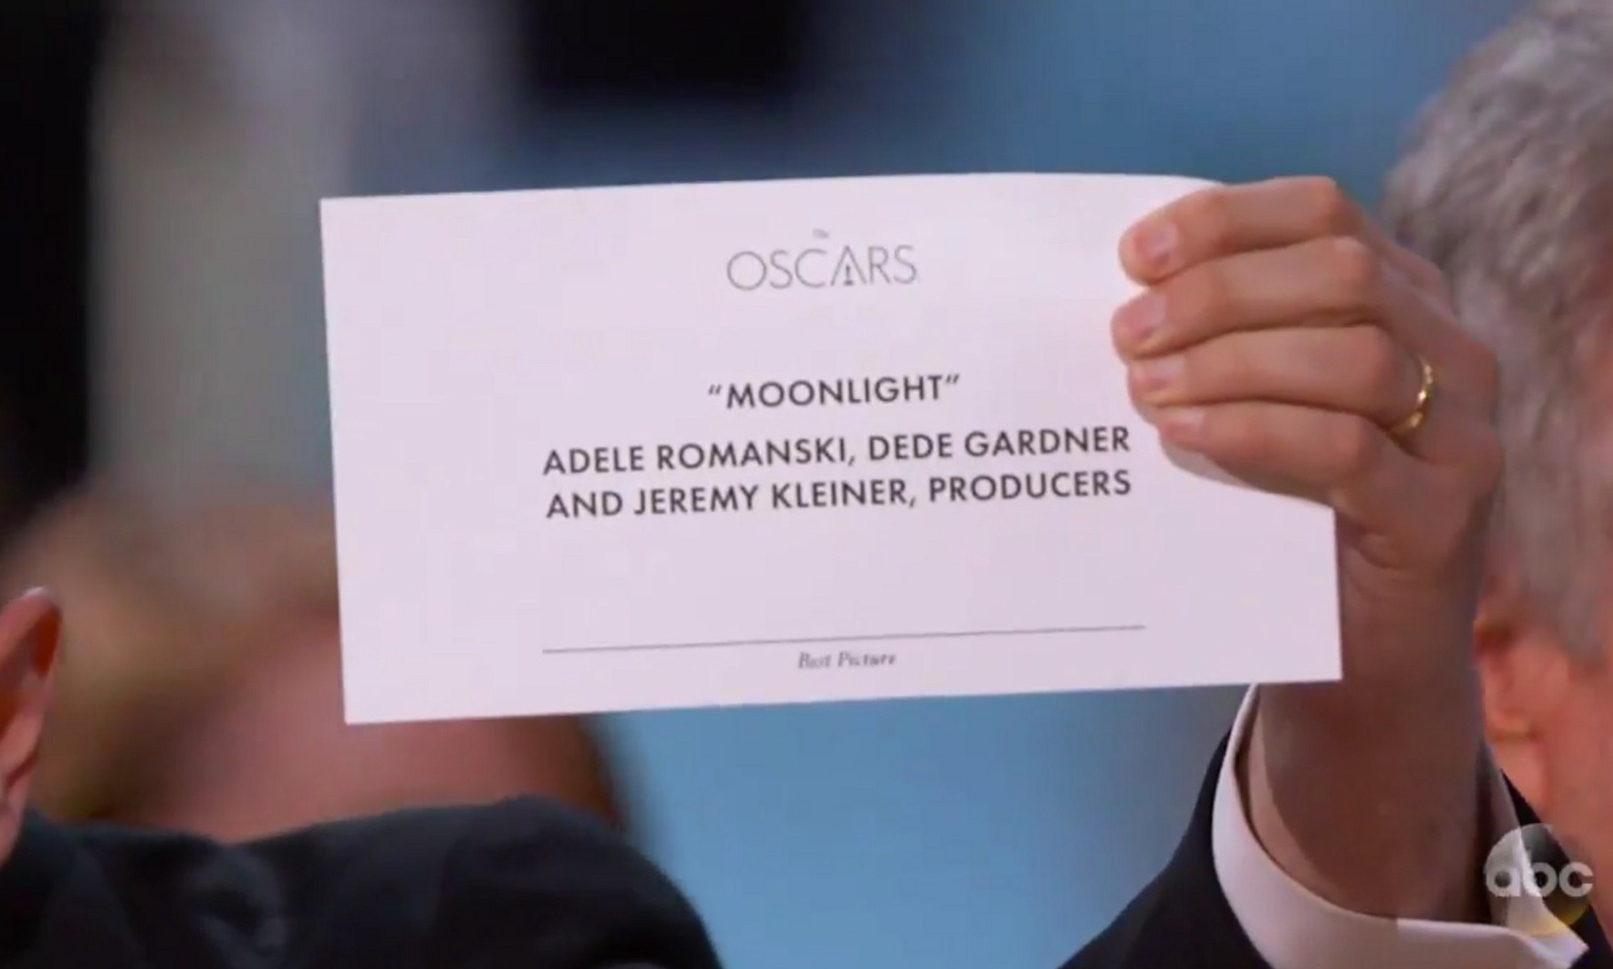 Typography at the Oscars - Moonlight